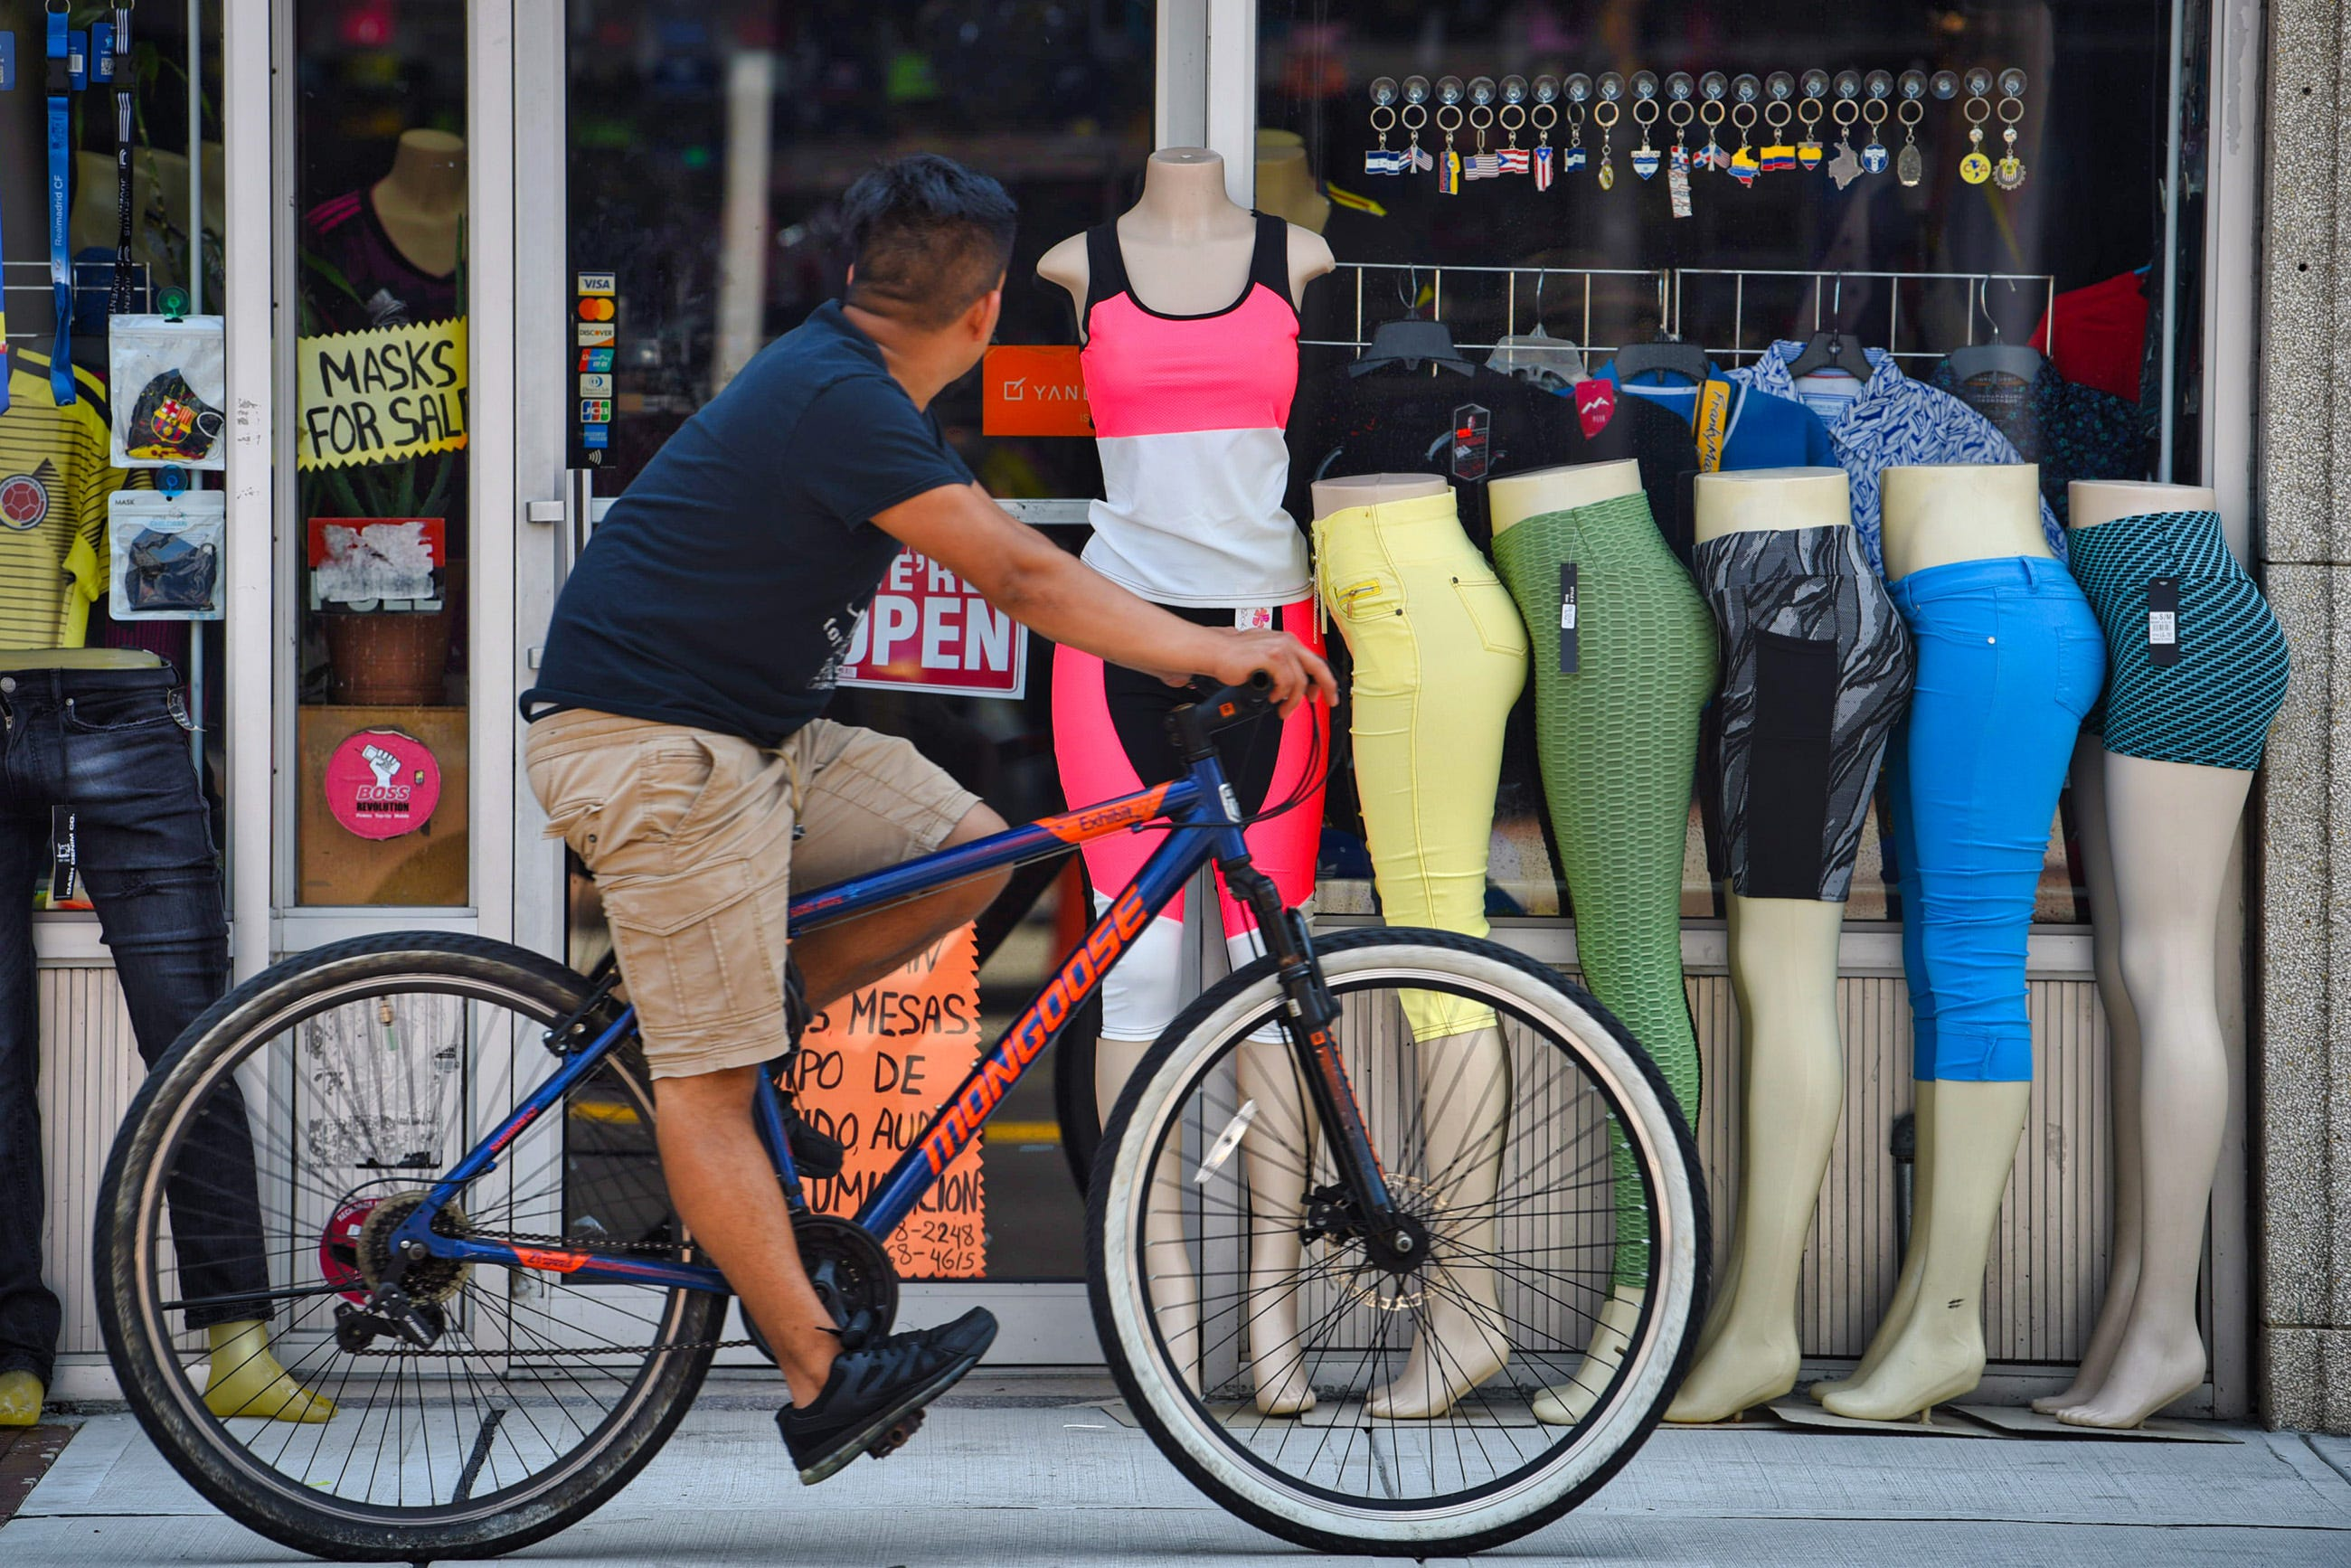 A man on a bicycle looks at colorful mannequin legs displayed outside of the Yambao Records located along Main Street in Hackensack on 07/18/21.